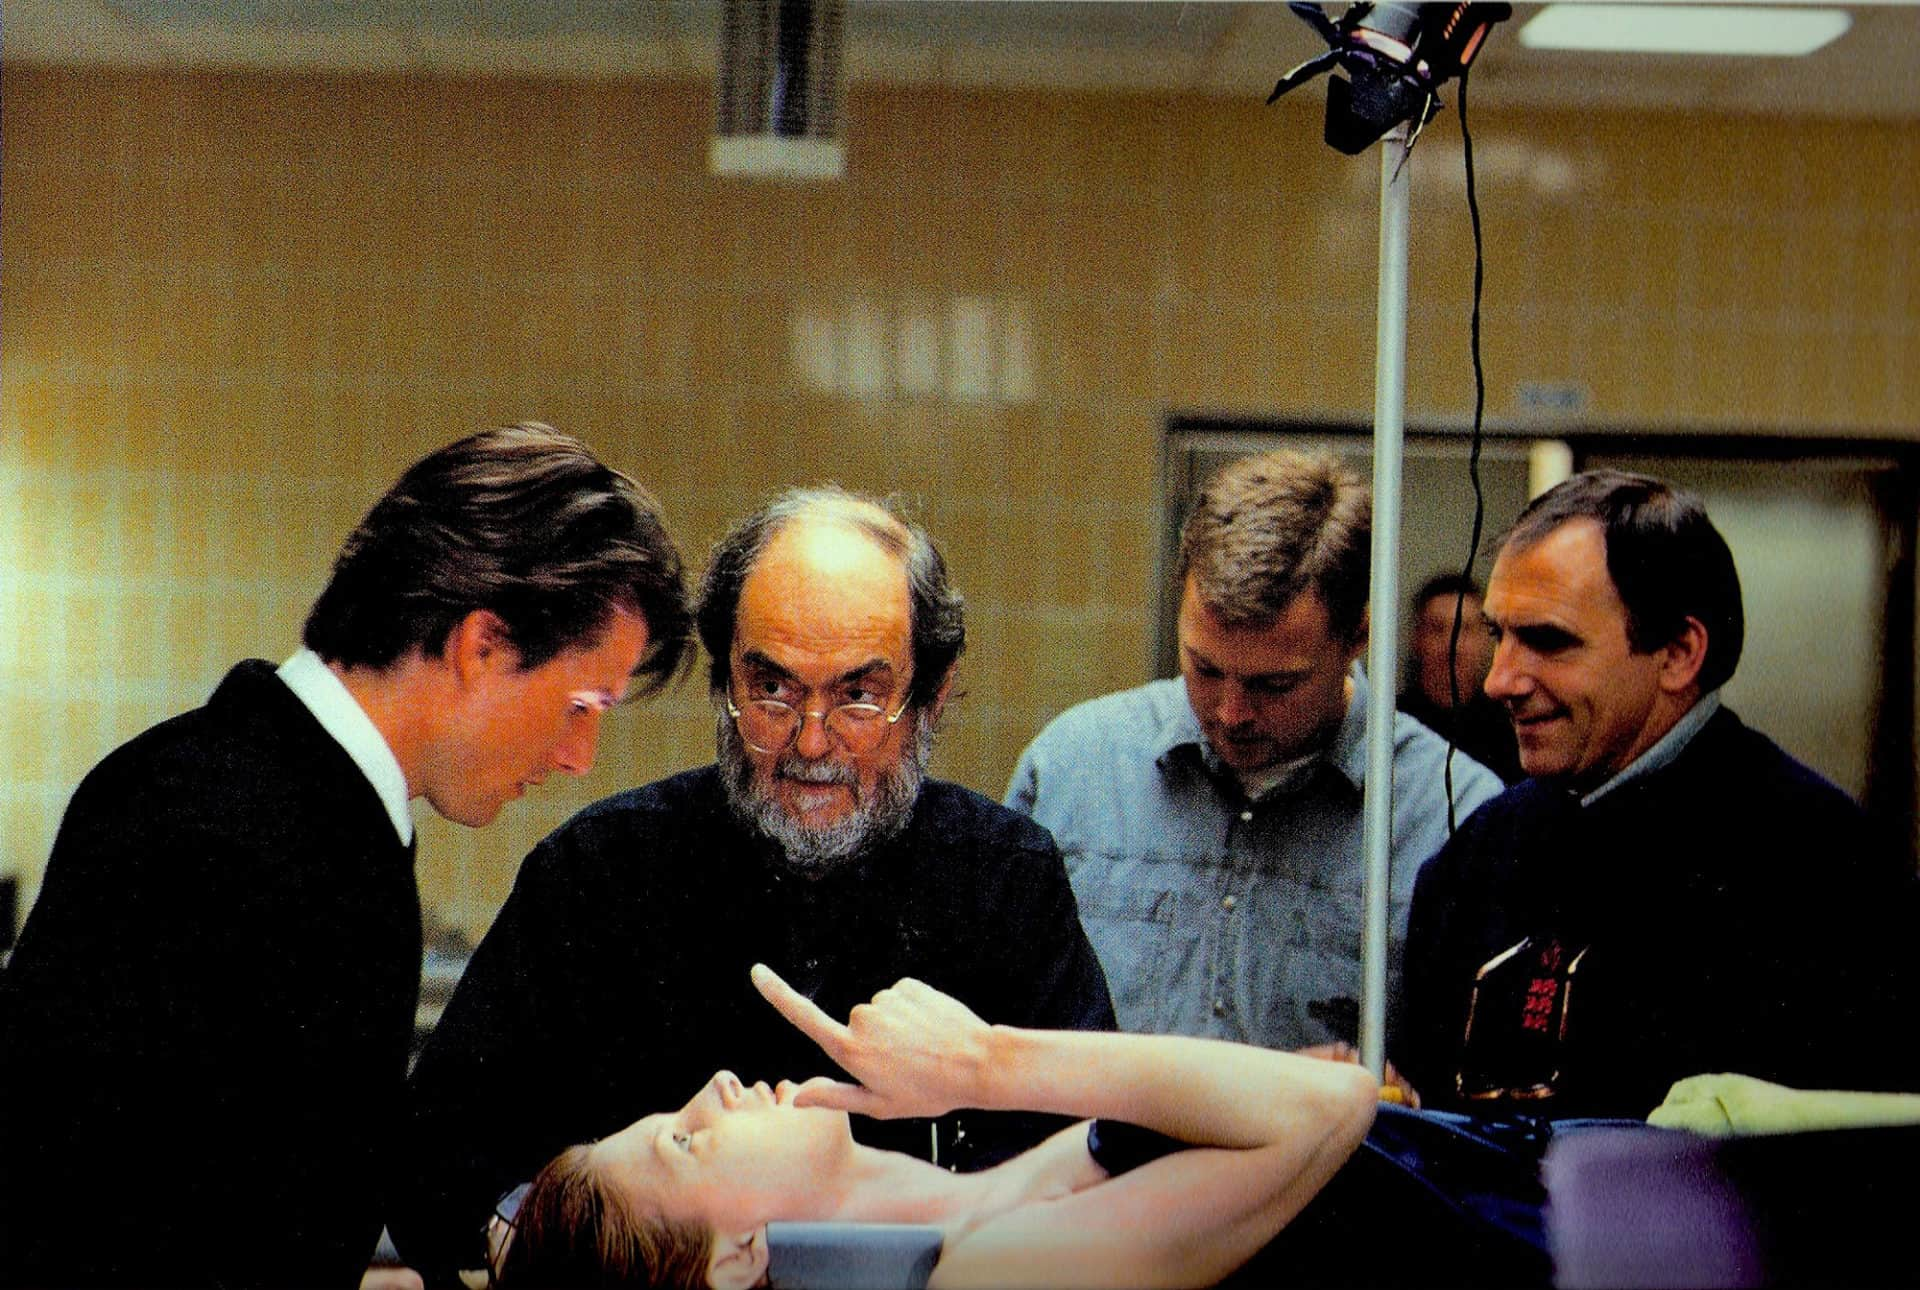 <em>Eyes Wide Shut</em> (1999) (l-r) Tom Cruise; director Stanley Kubrick; focus puller Nick Penn and Larry Smith BSC holding the stand